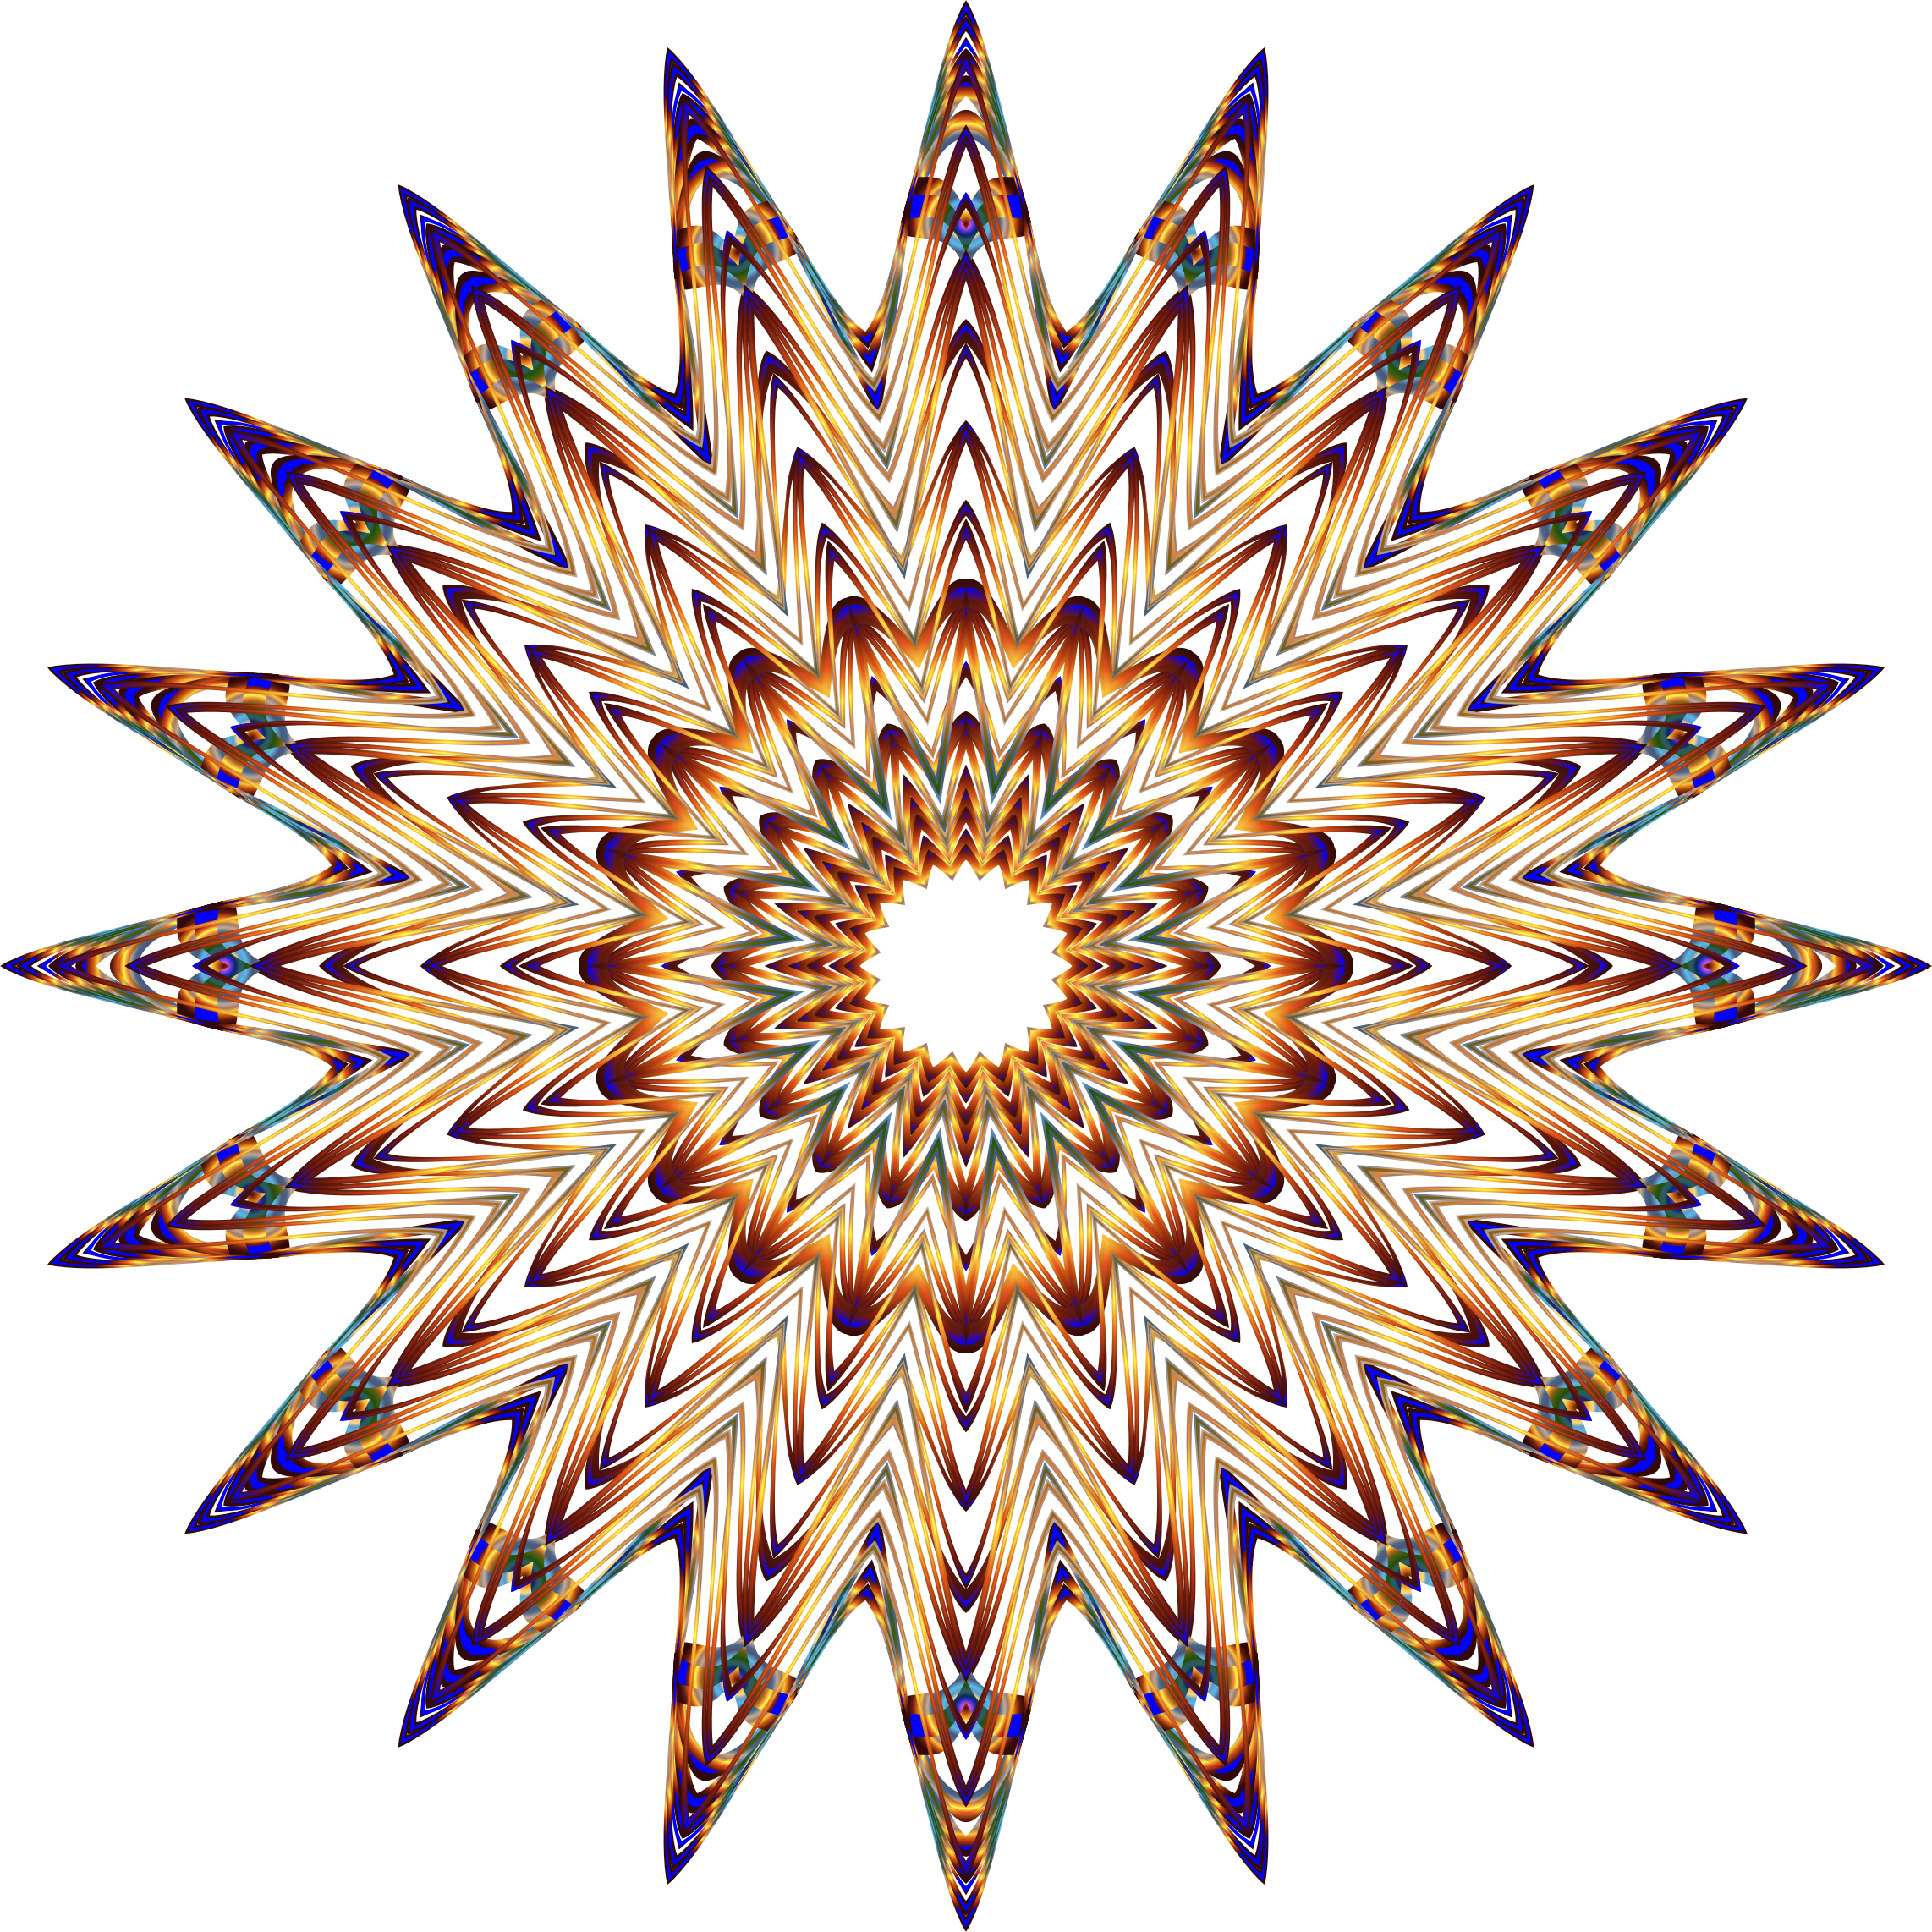 Prismatic Mandala Line Art 6 No Background by GDJ